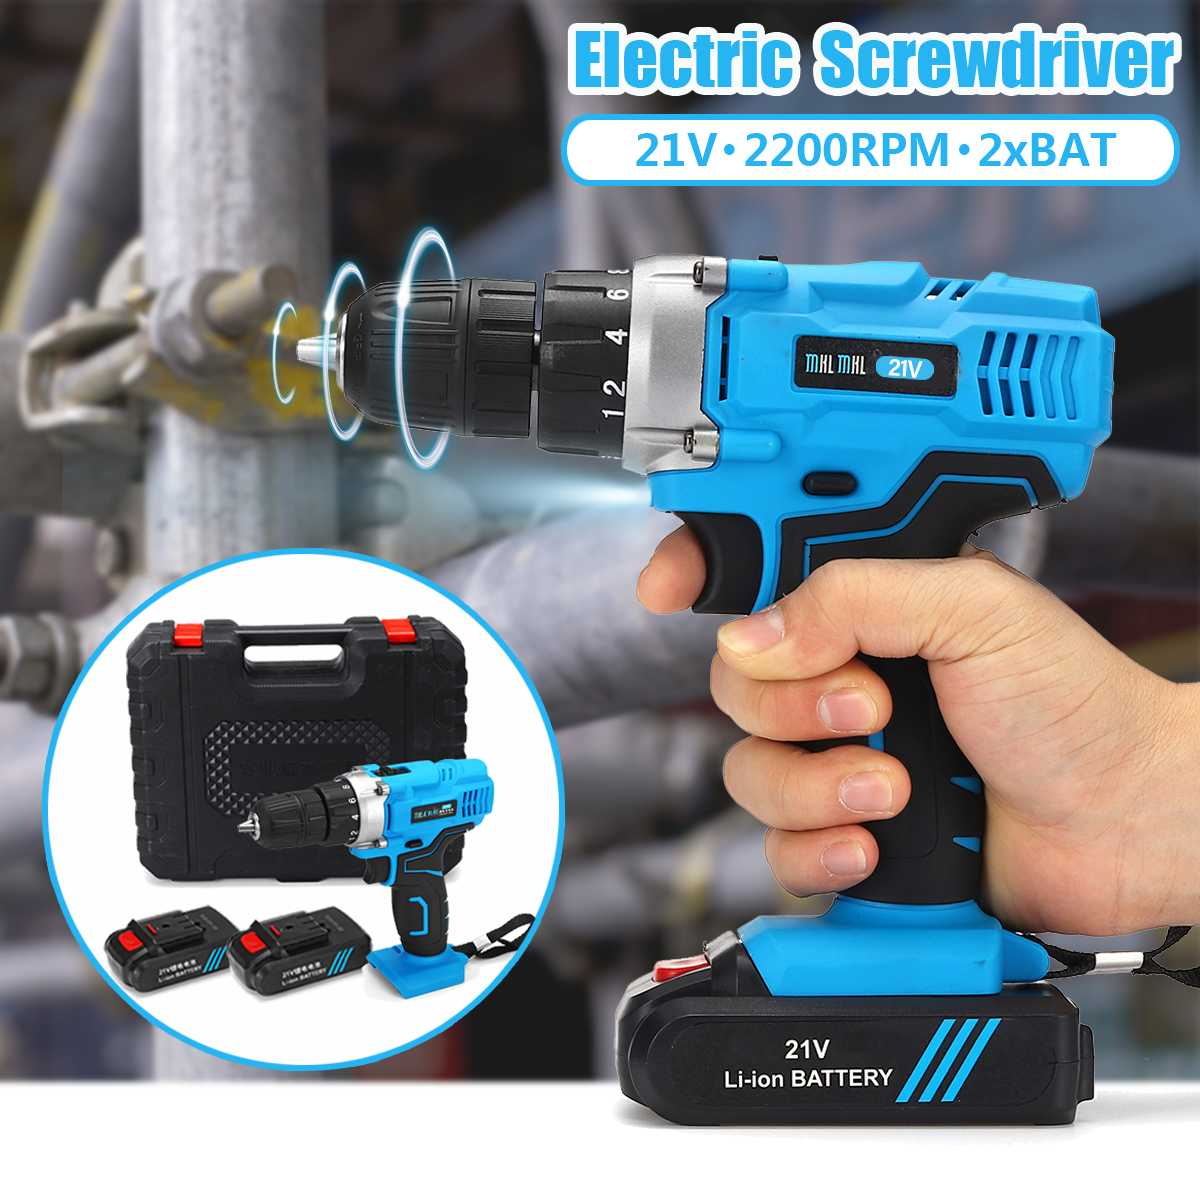 21V 2200RPM 2 Speed Electric Screwdriver Kit 100-240V With 2 Batteries Rechargeable Electric Cordless Drill Home DIY Power Tool